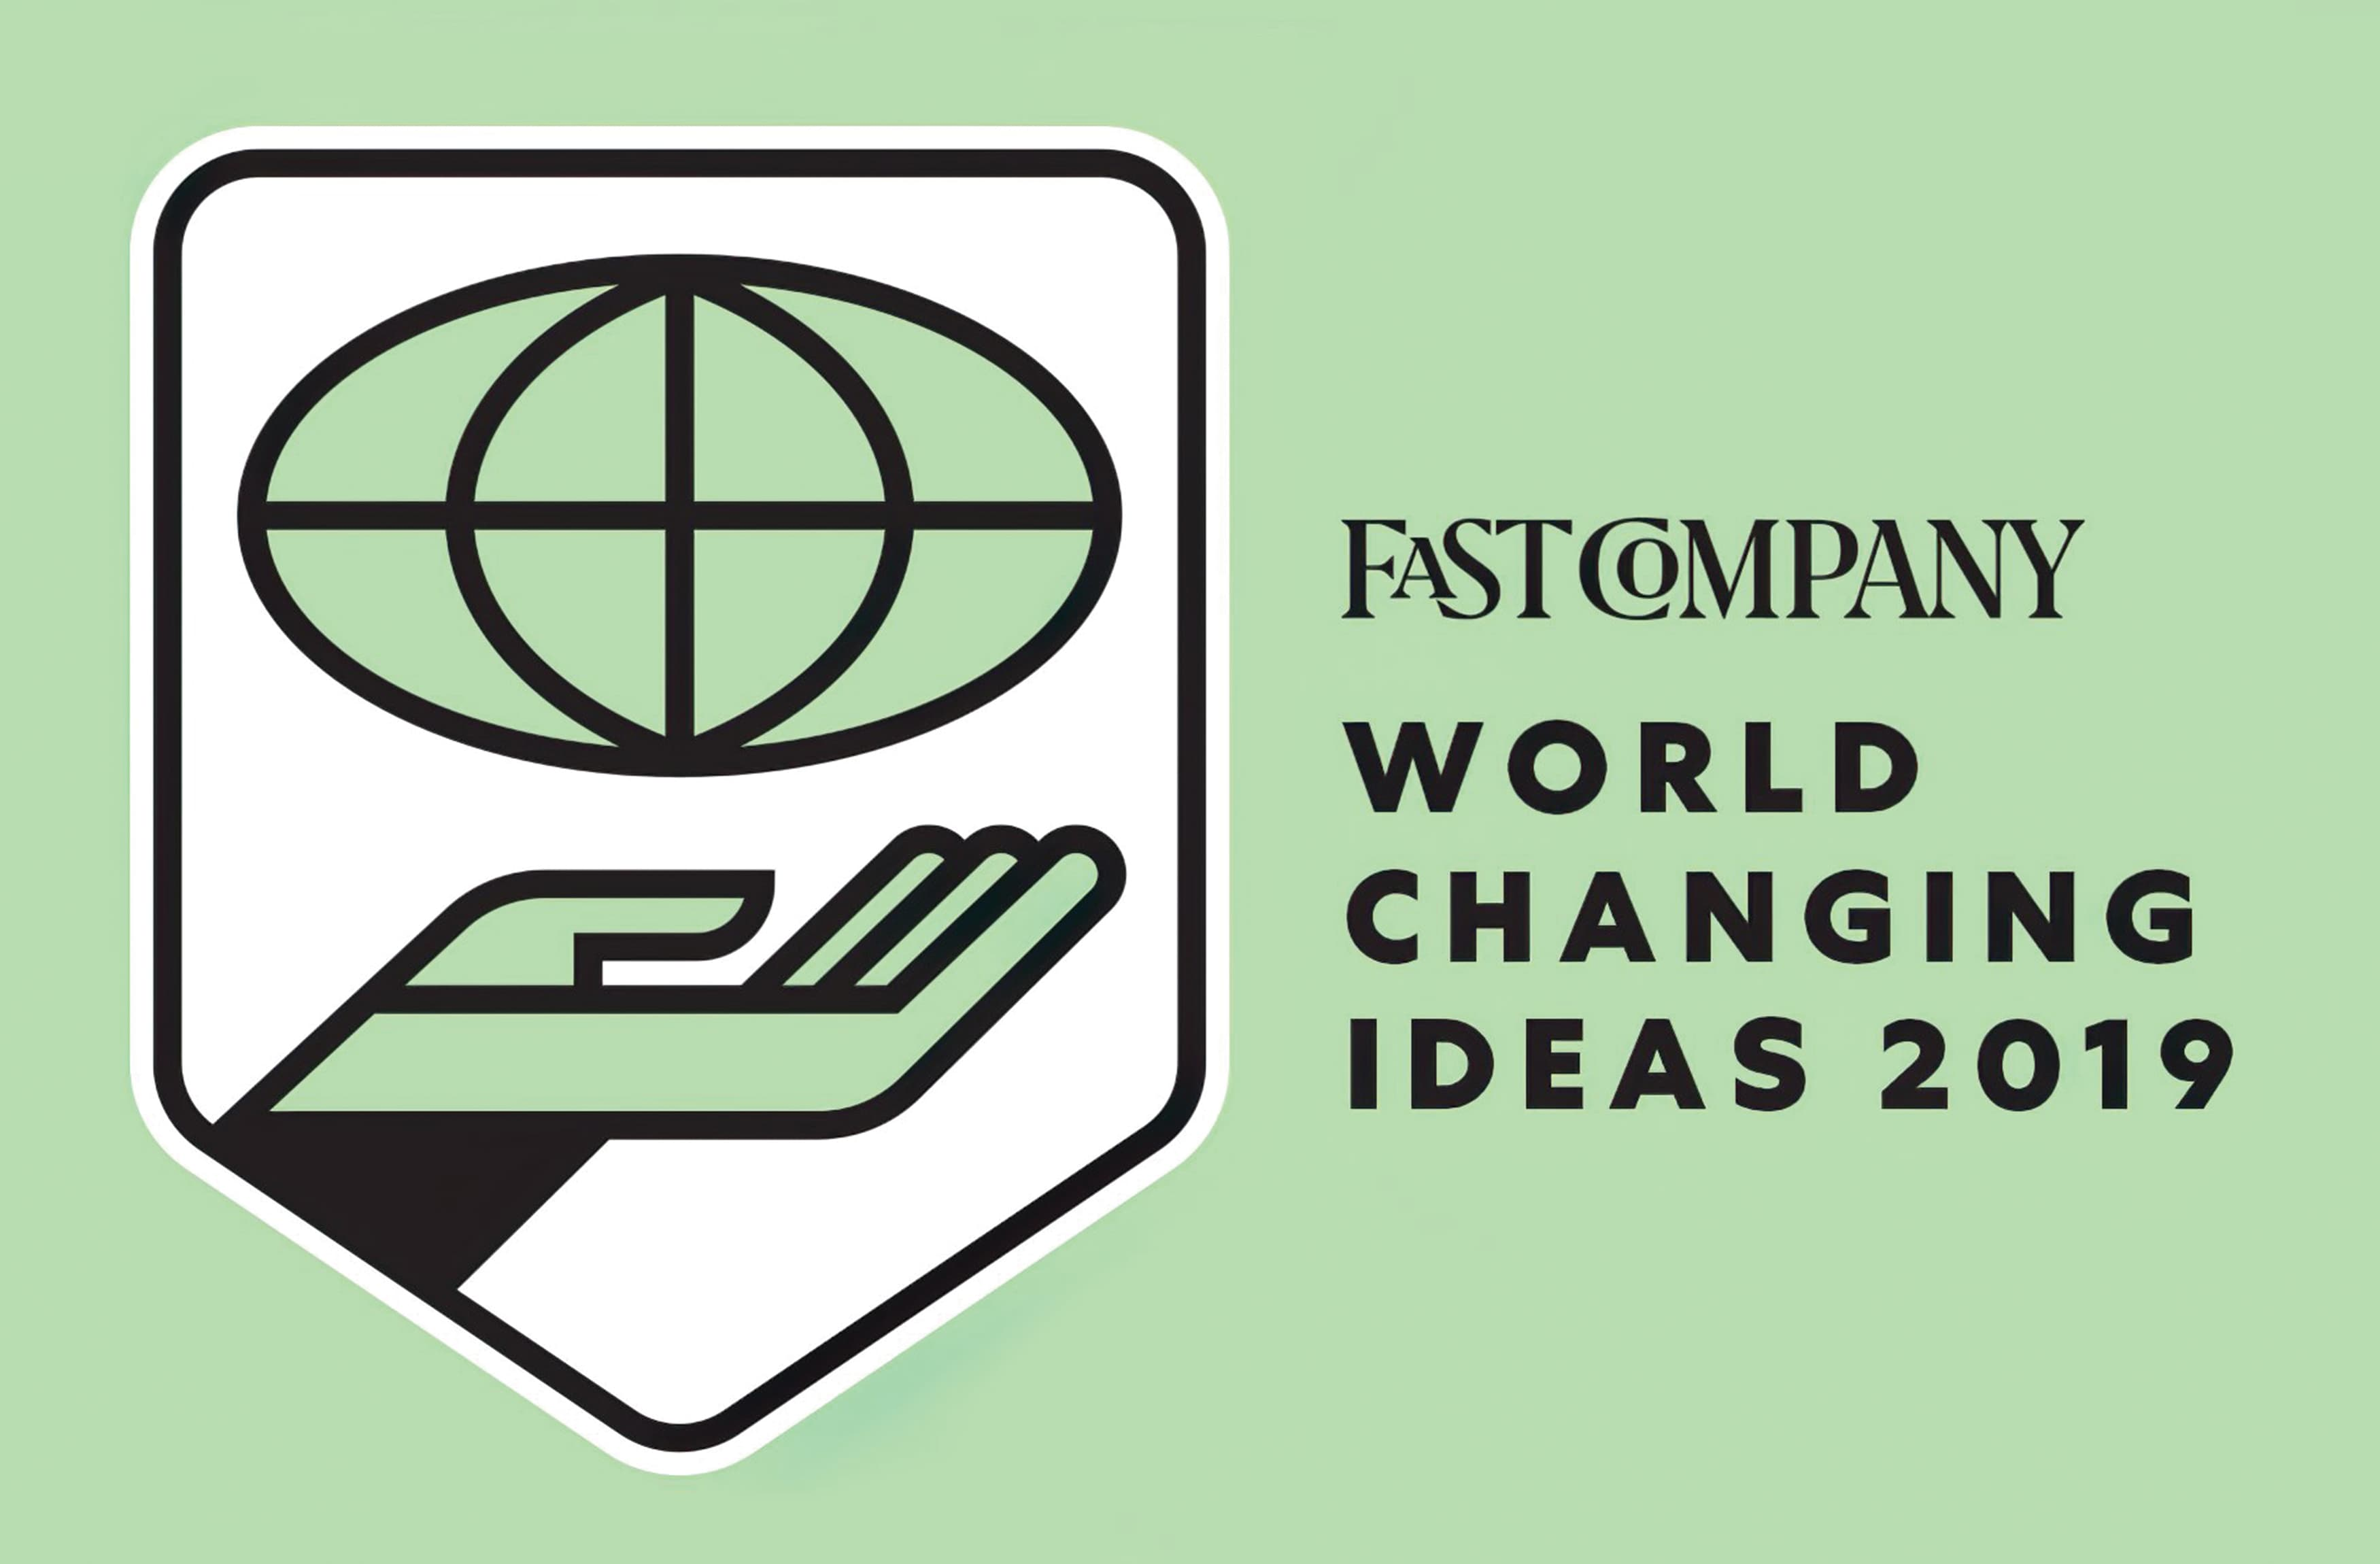 Changing Ideas is one of Fast Company's major annual awards programs and is focused on social good, seeking to elevate finished products and brave concepts